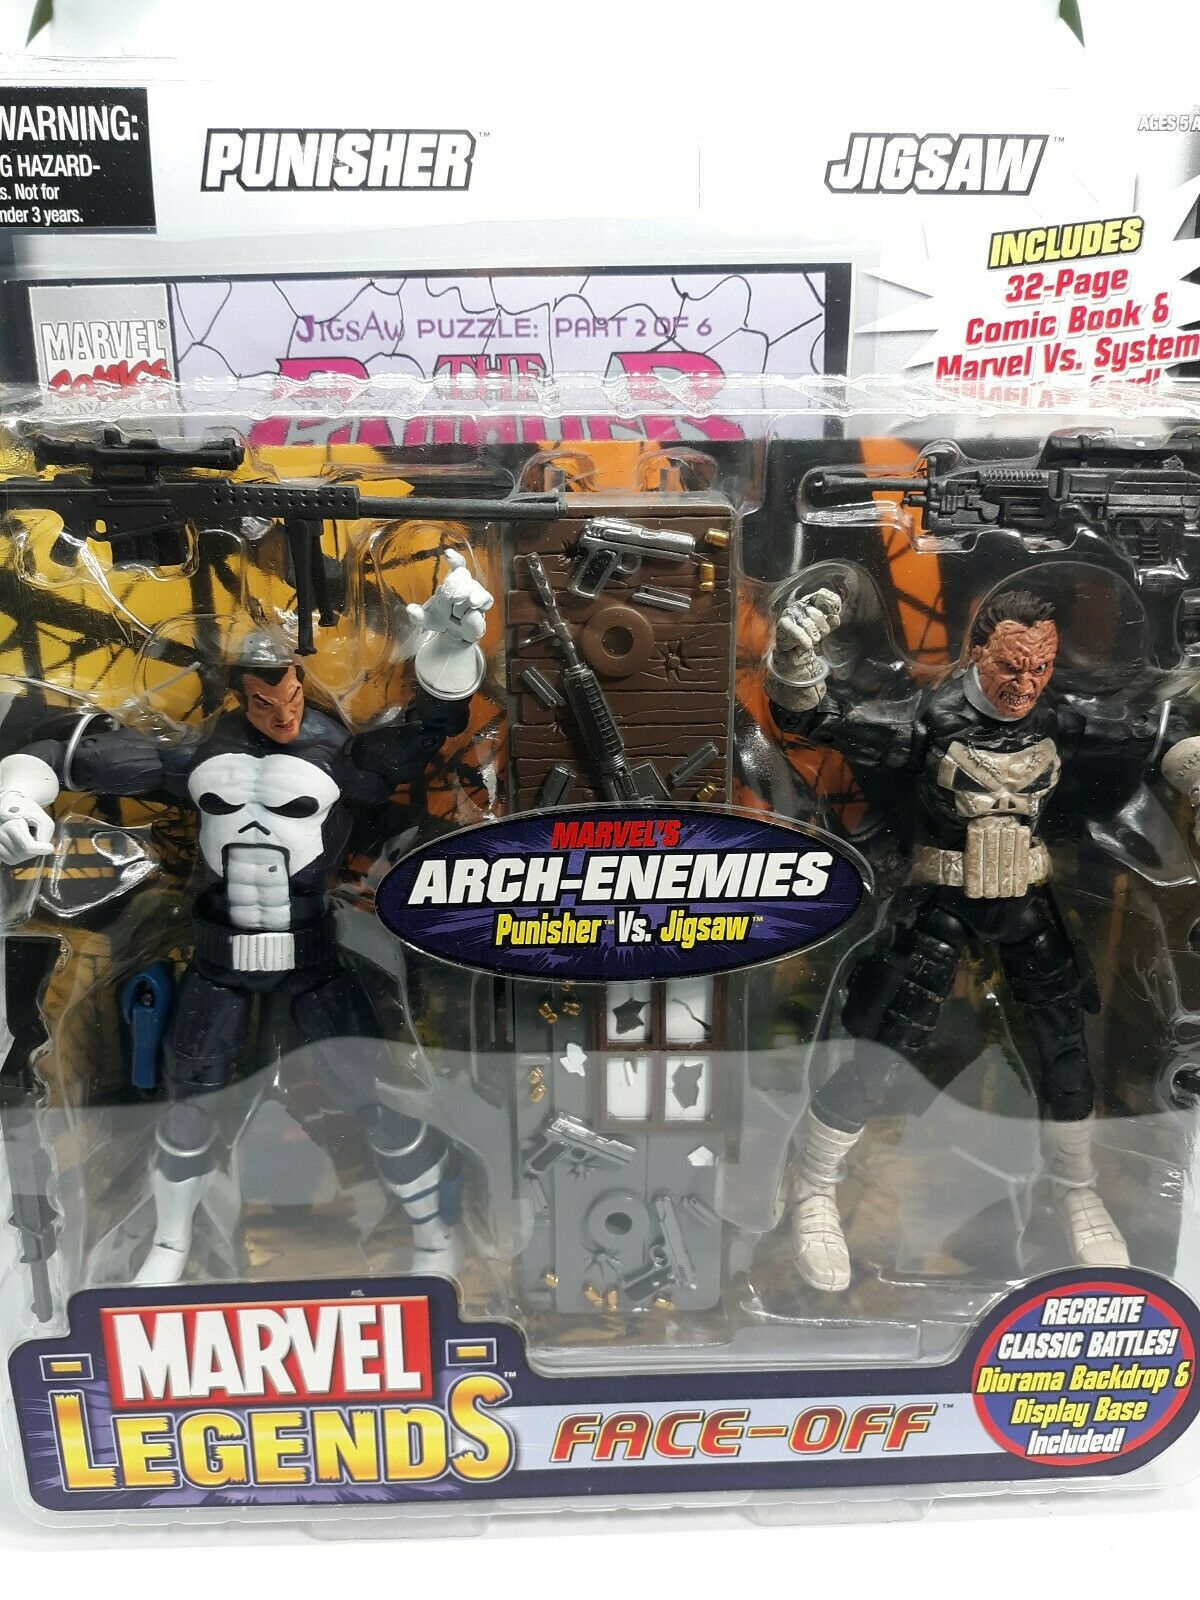 Toy Biz Marvel Legends Arch-Enemies Series THE PUNISHER VS JIGSAW Diorama A22